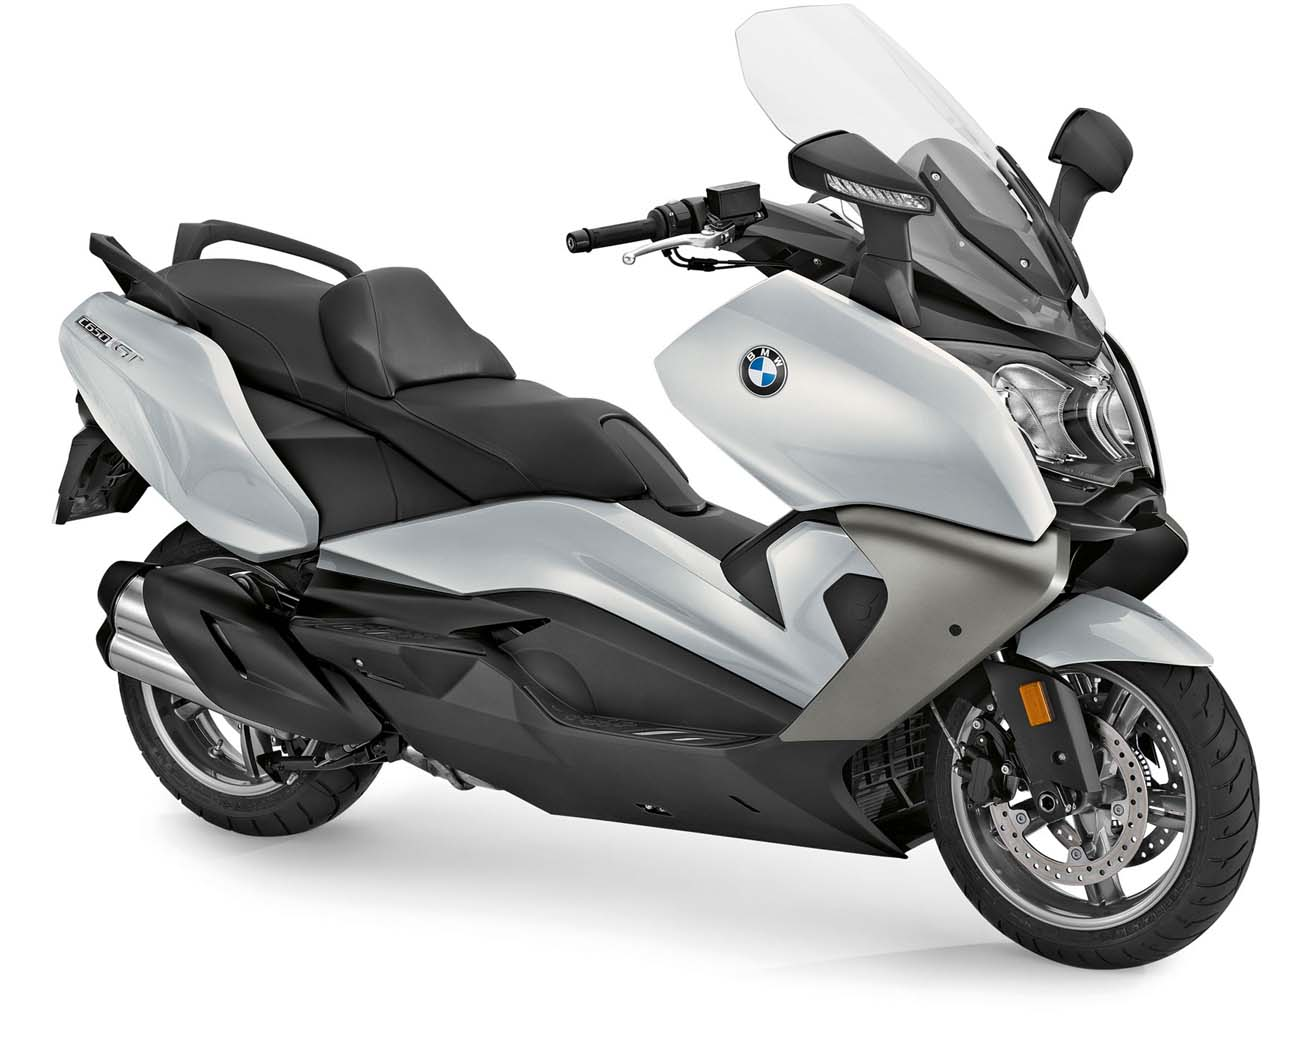 BMW C 650 GT technical specifications